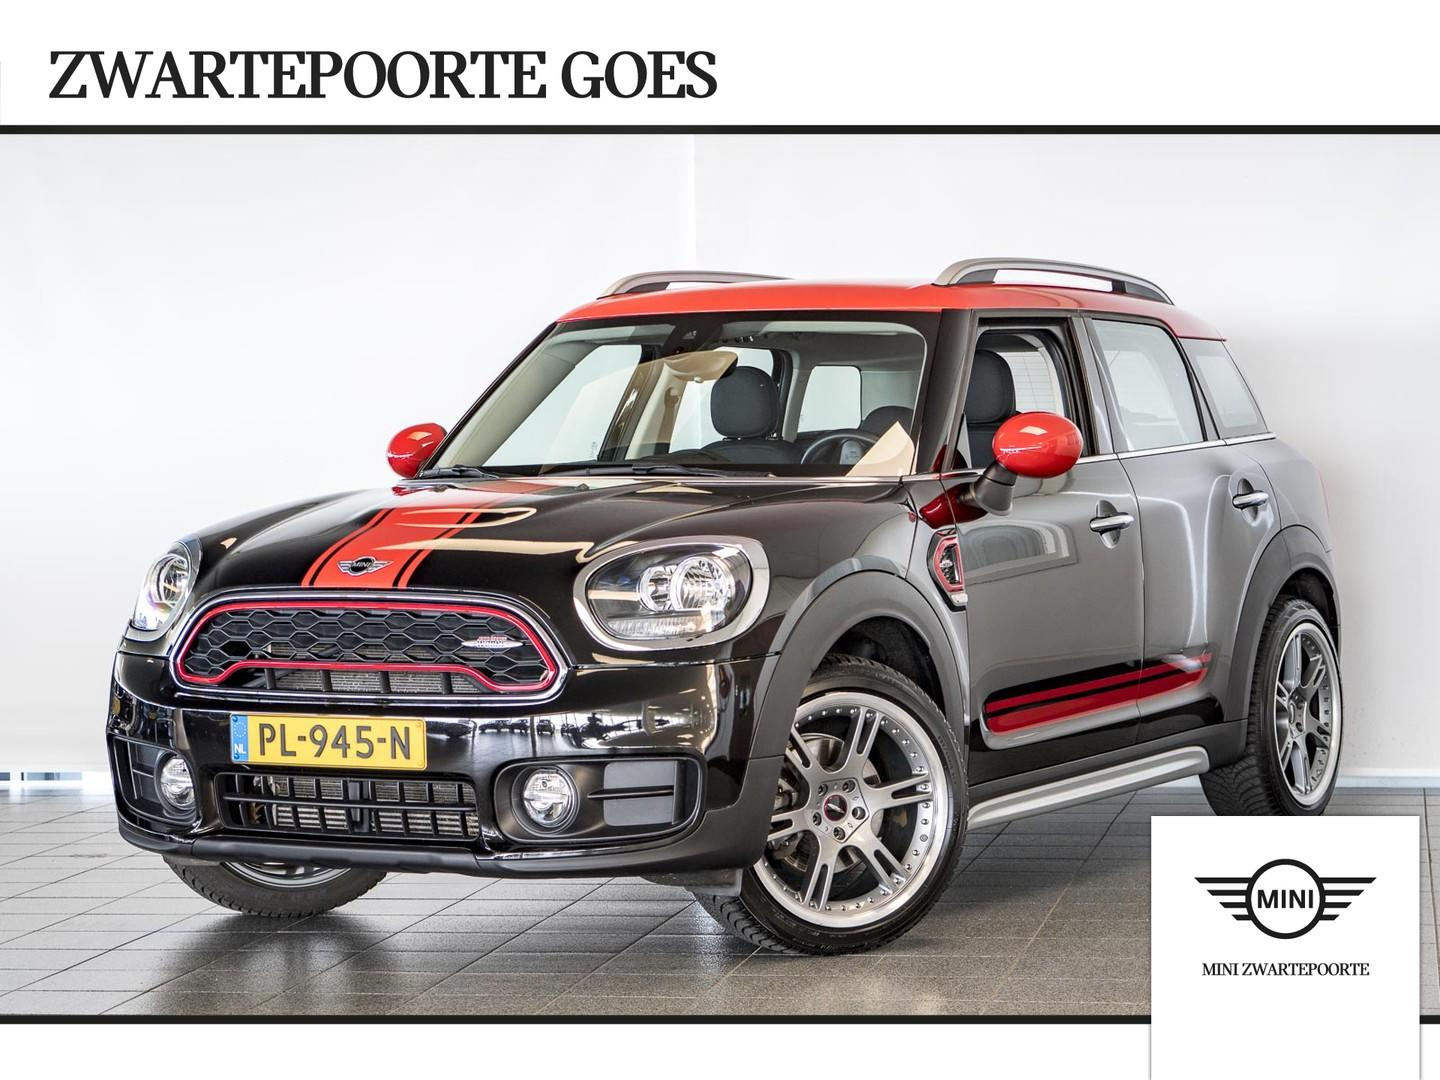 Mini Countryman 1.5 cooper business - jcw look